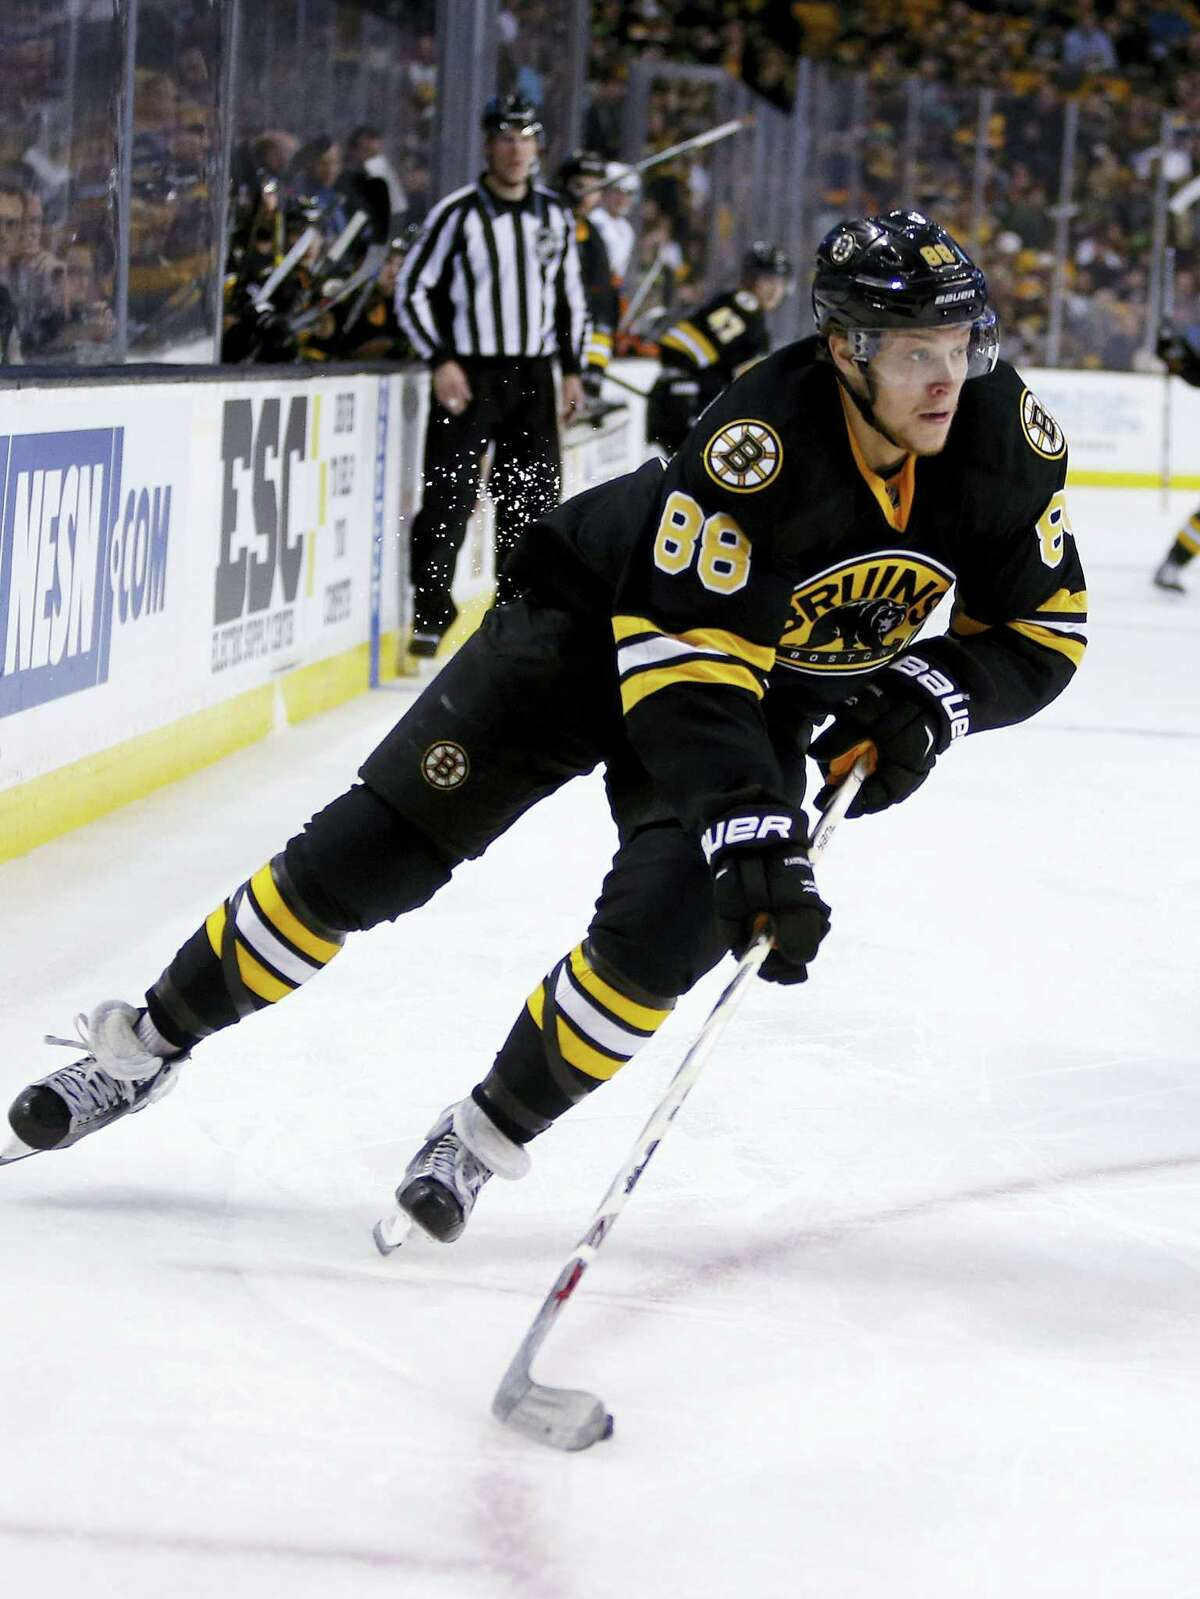 The Bruins' David Pastrnak handles the puck during the second period against the Islanders on Saturday.